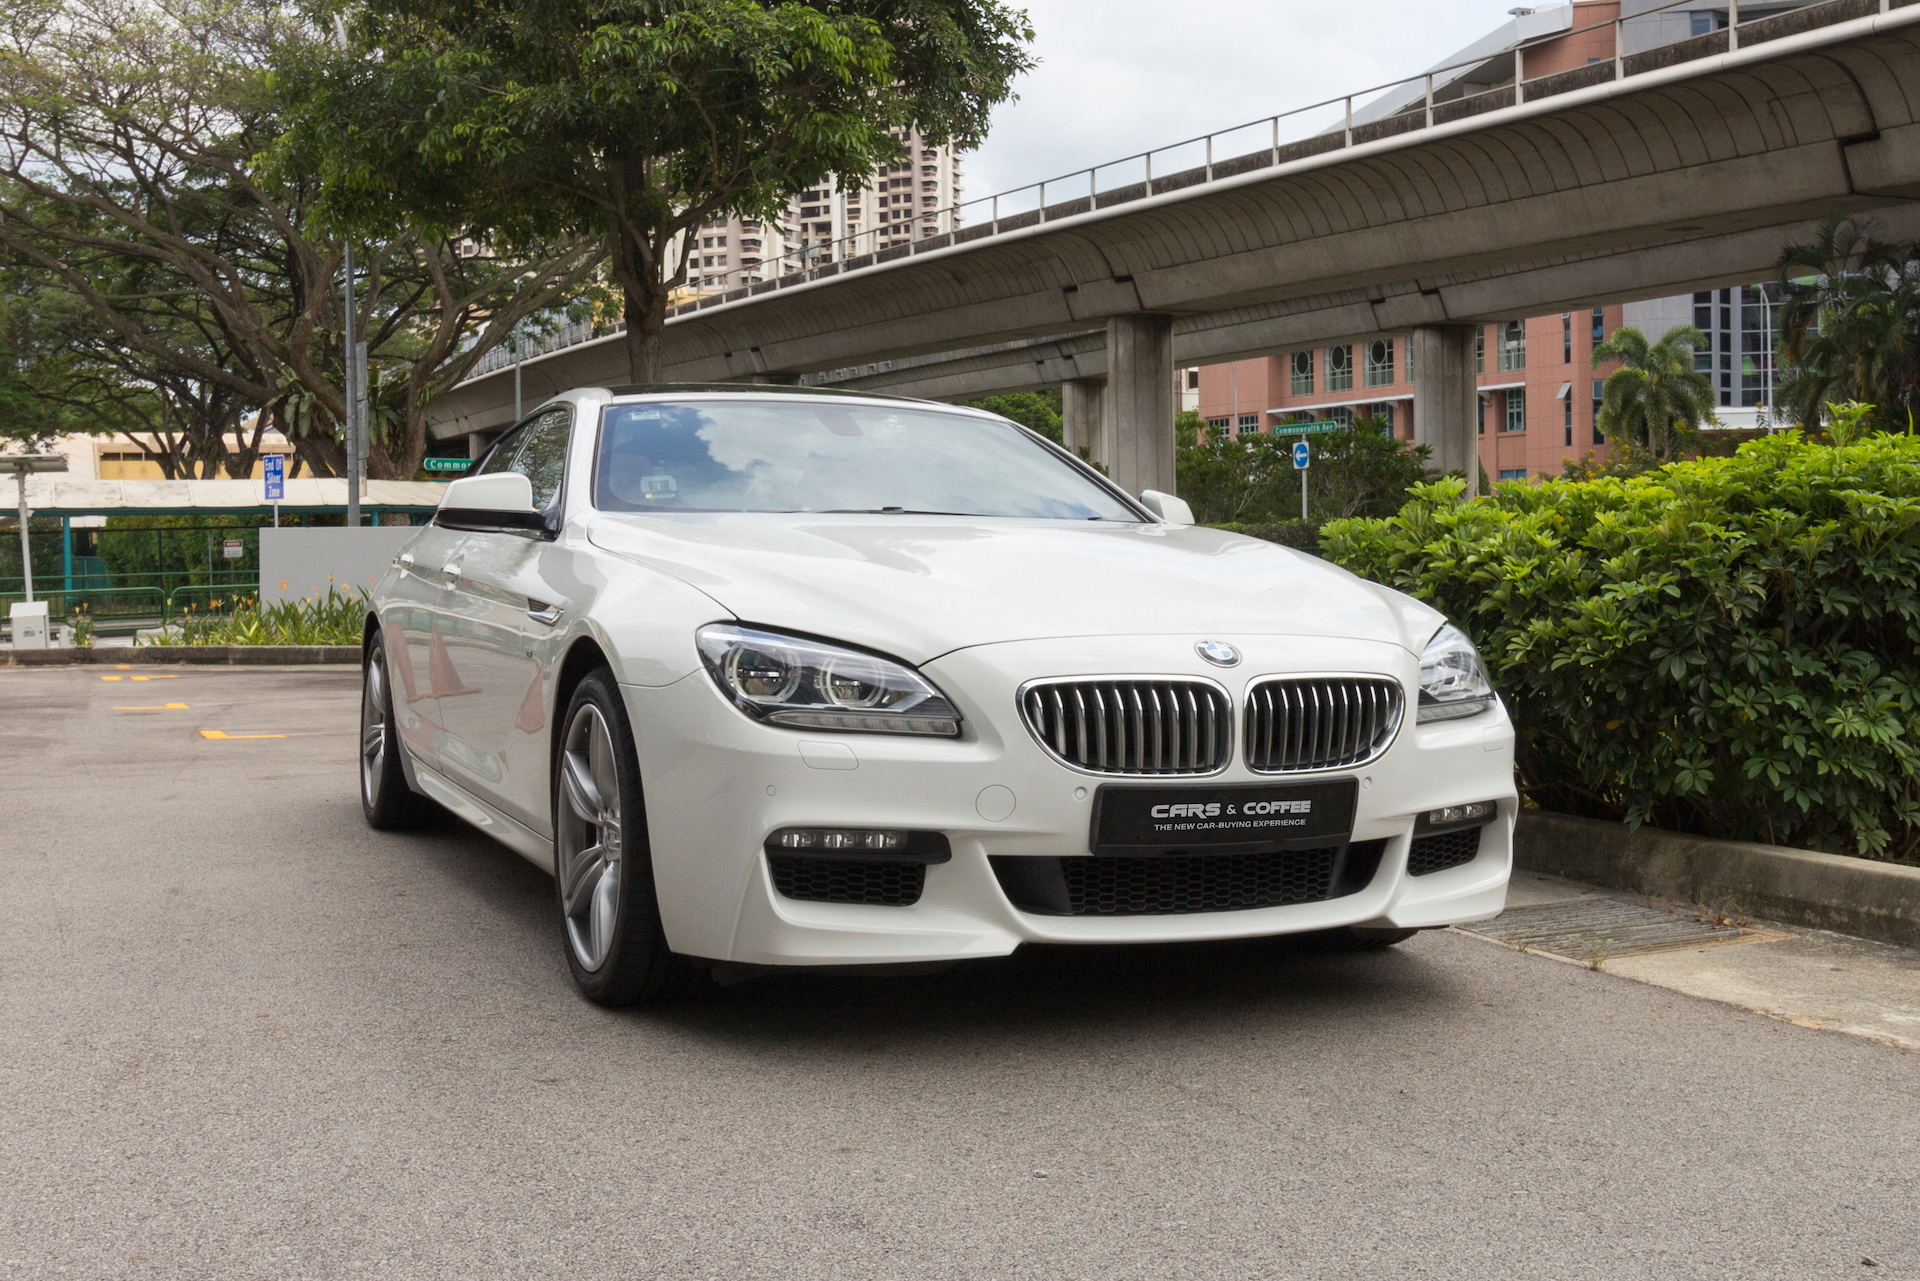 Certified Pre-Owned BMW 650i Gran Coupe | Cars and Coffee Singapore